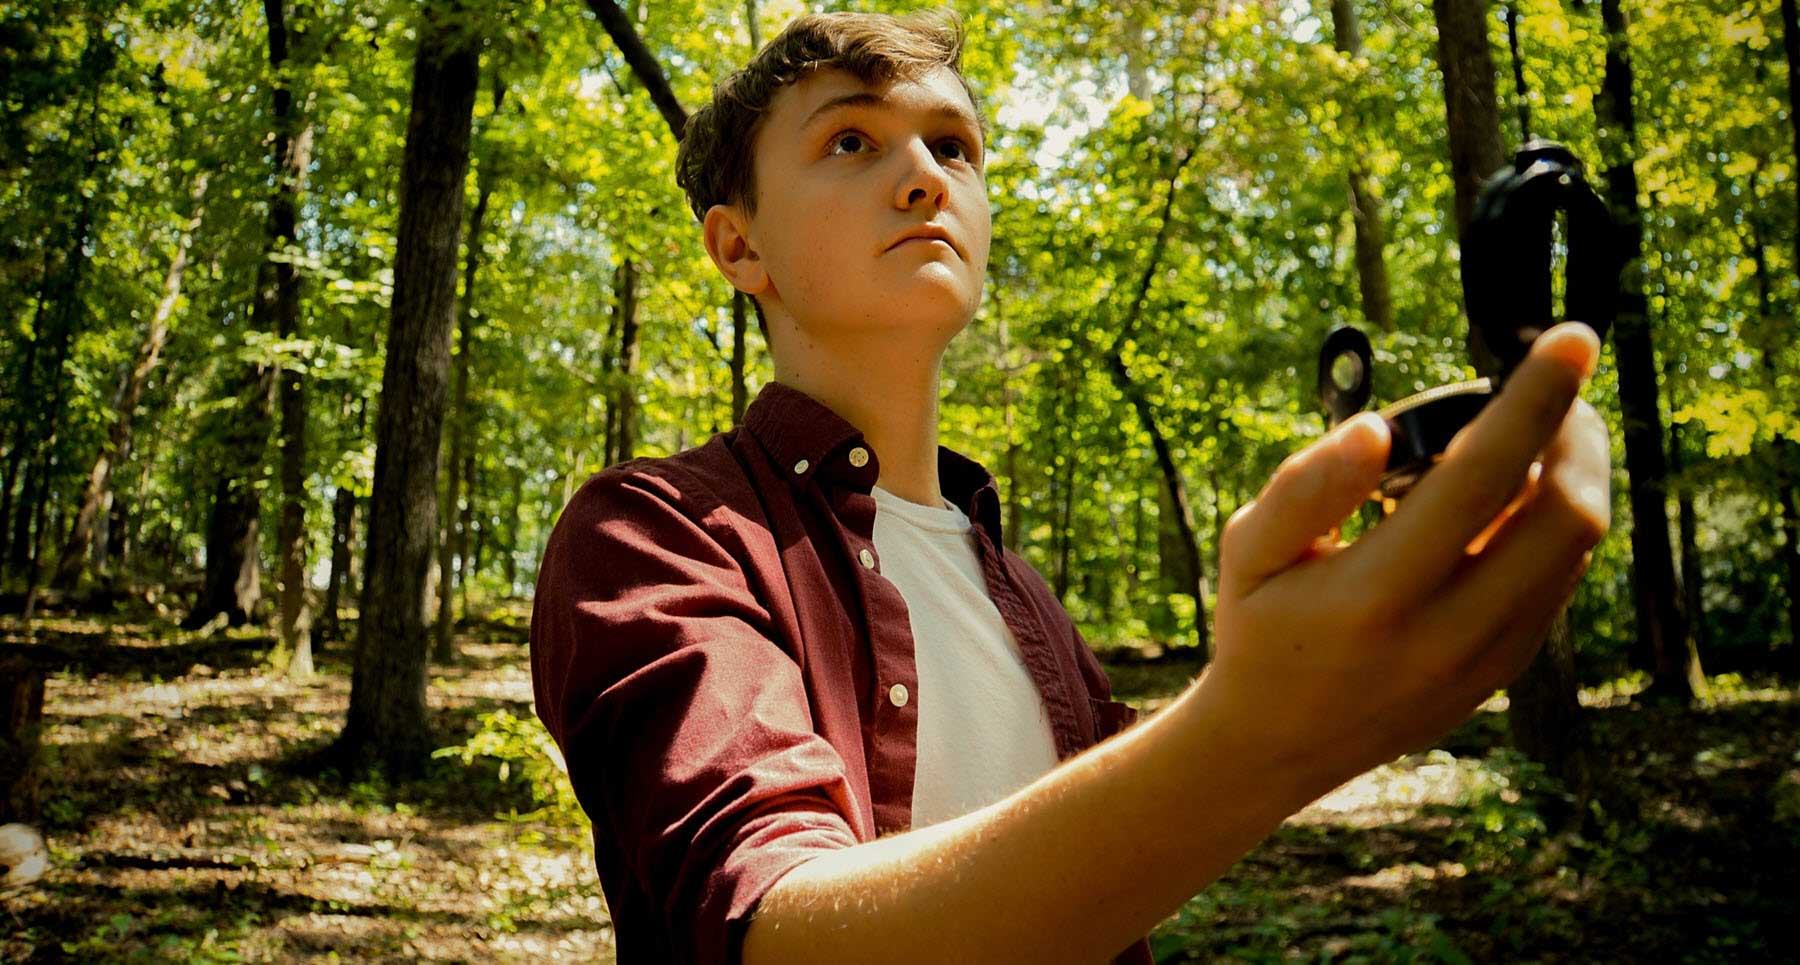 guy-standing-in-the-woods-with-a-compass-wanting-to-make-better-choices-in-life